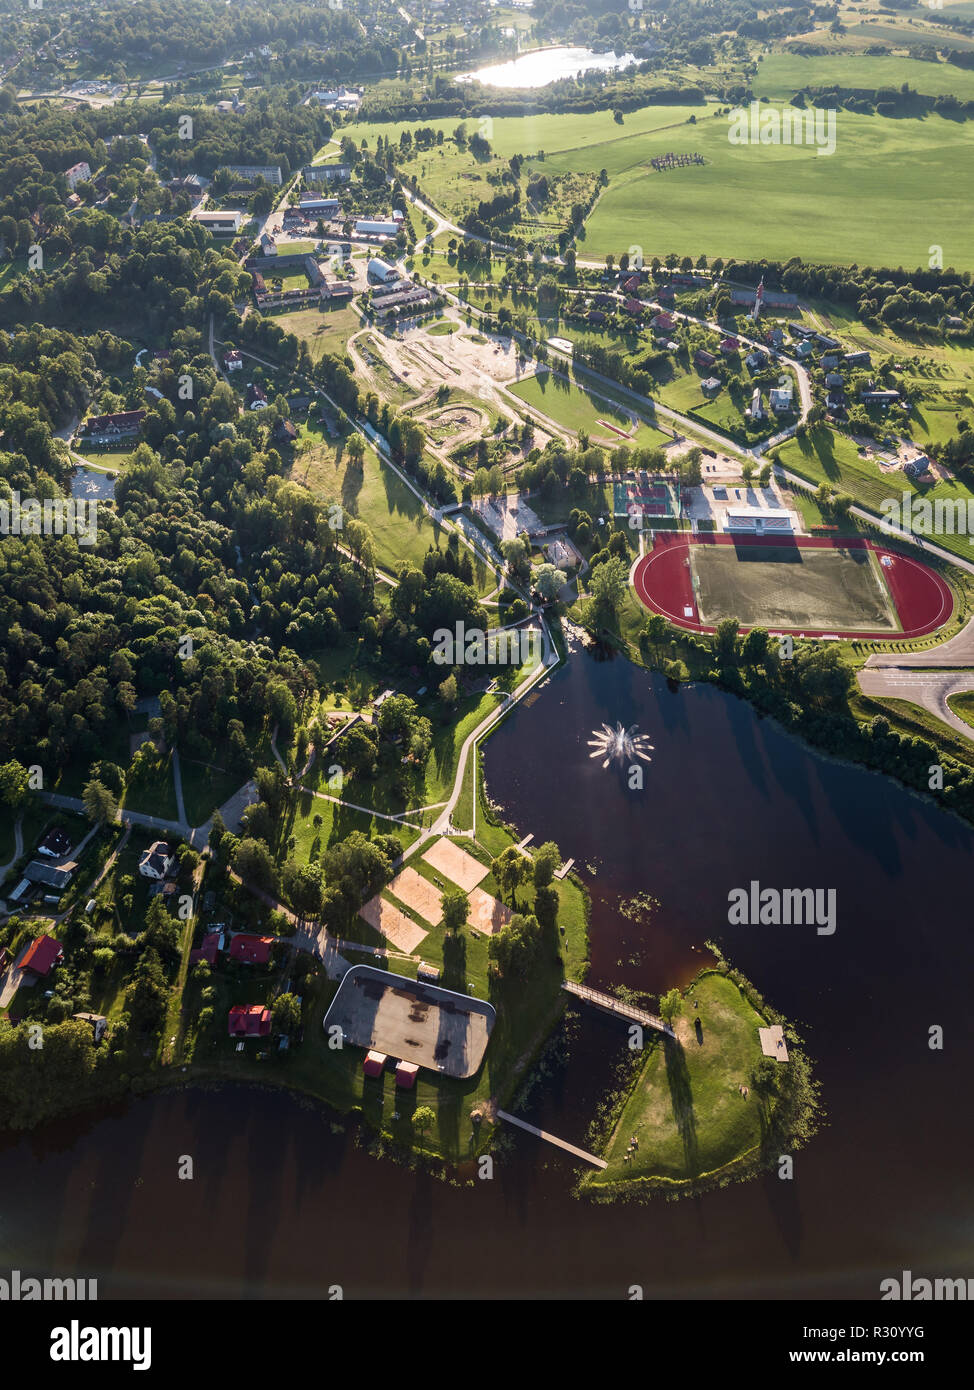 Aerial Drone Photography of the City with the Lake and Stadium Surrounded in Beautiful Spring Colors on a Sunny Day - Stock Image